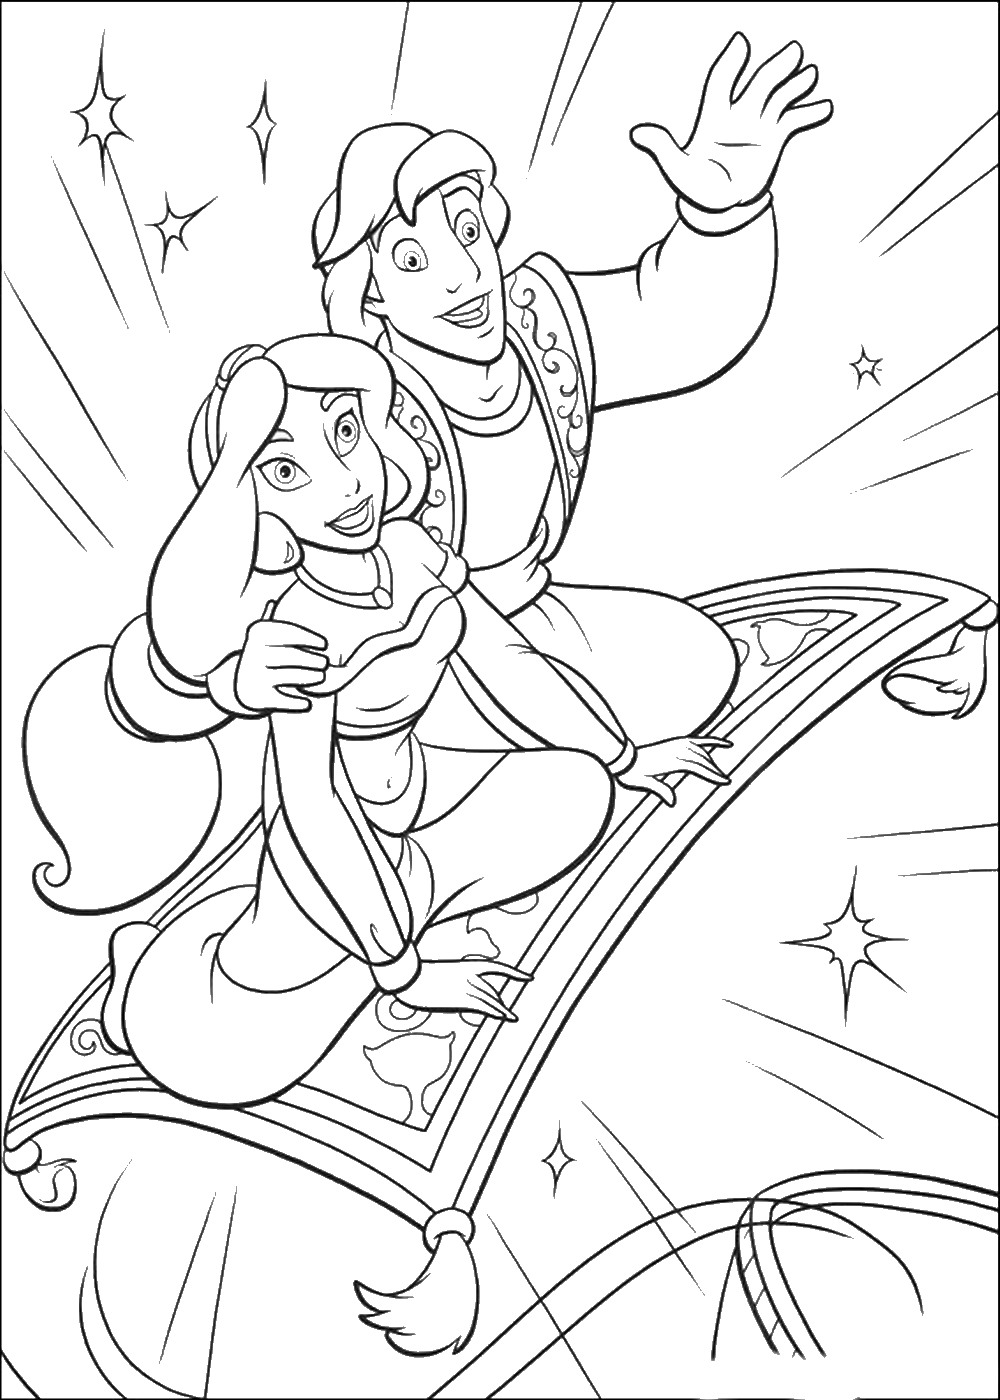 coloring pages disney aladdin aladdin coloring pages 3 disneyclipscom coloring disney pages aladdin